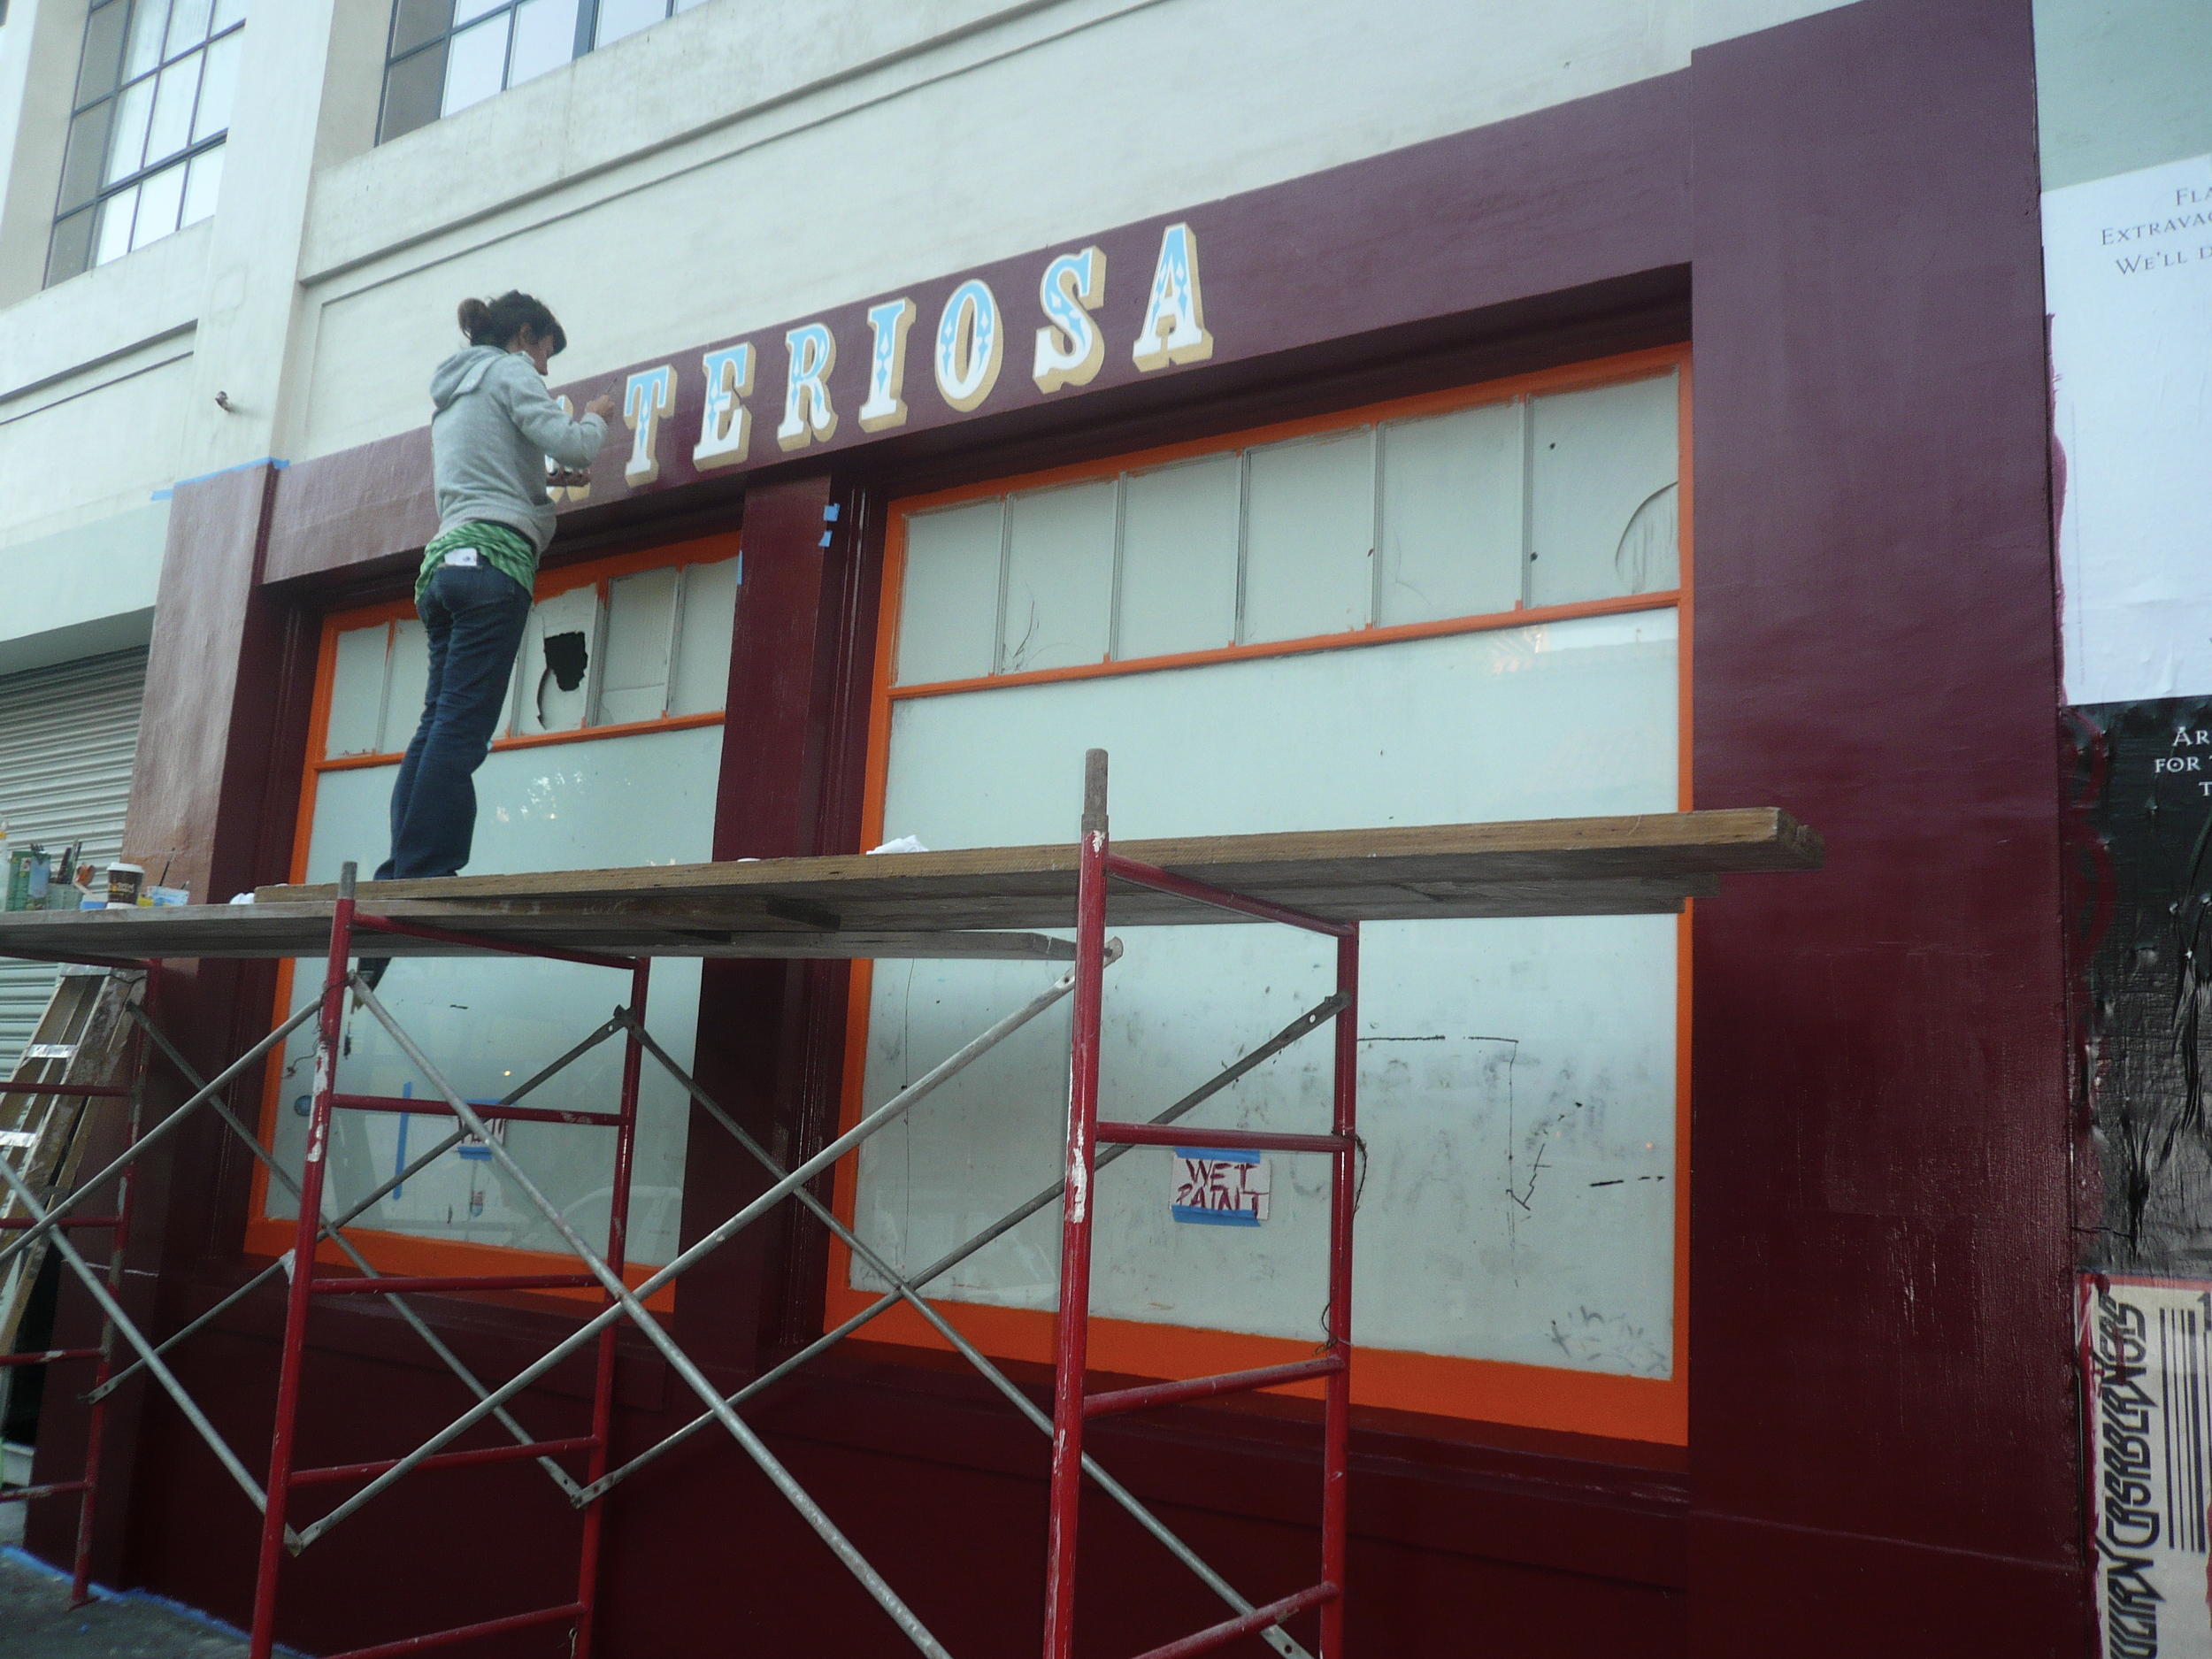 """Ms.Teriosa Project"""